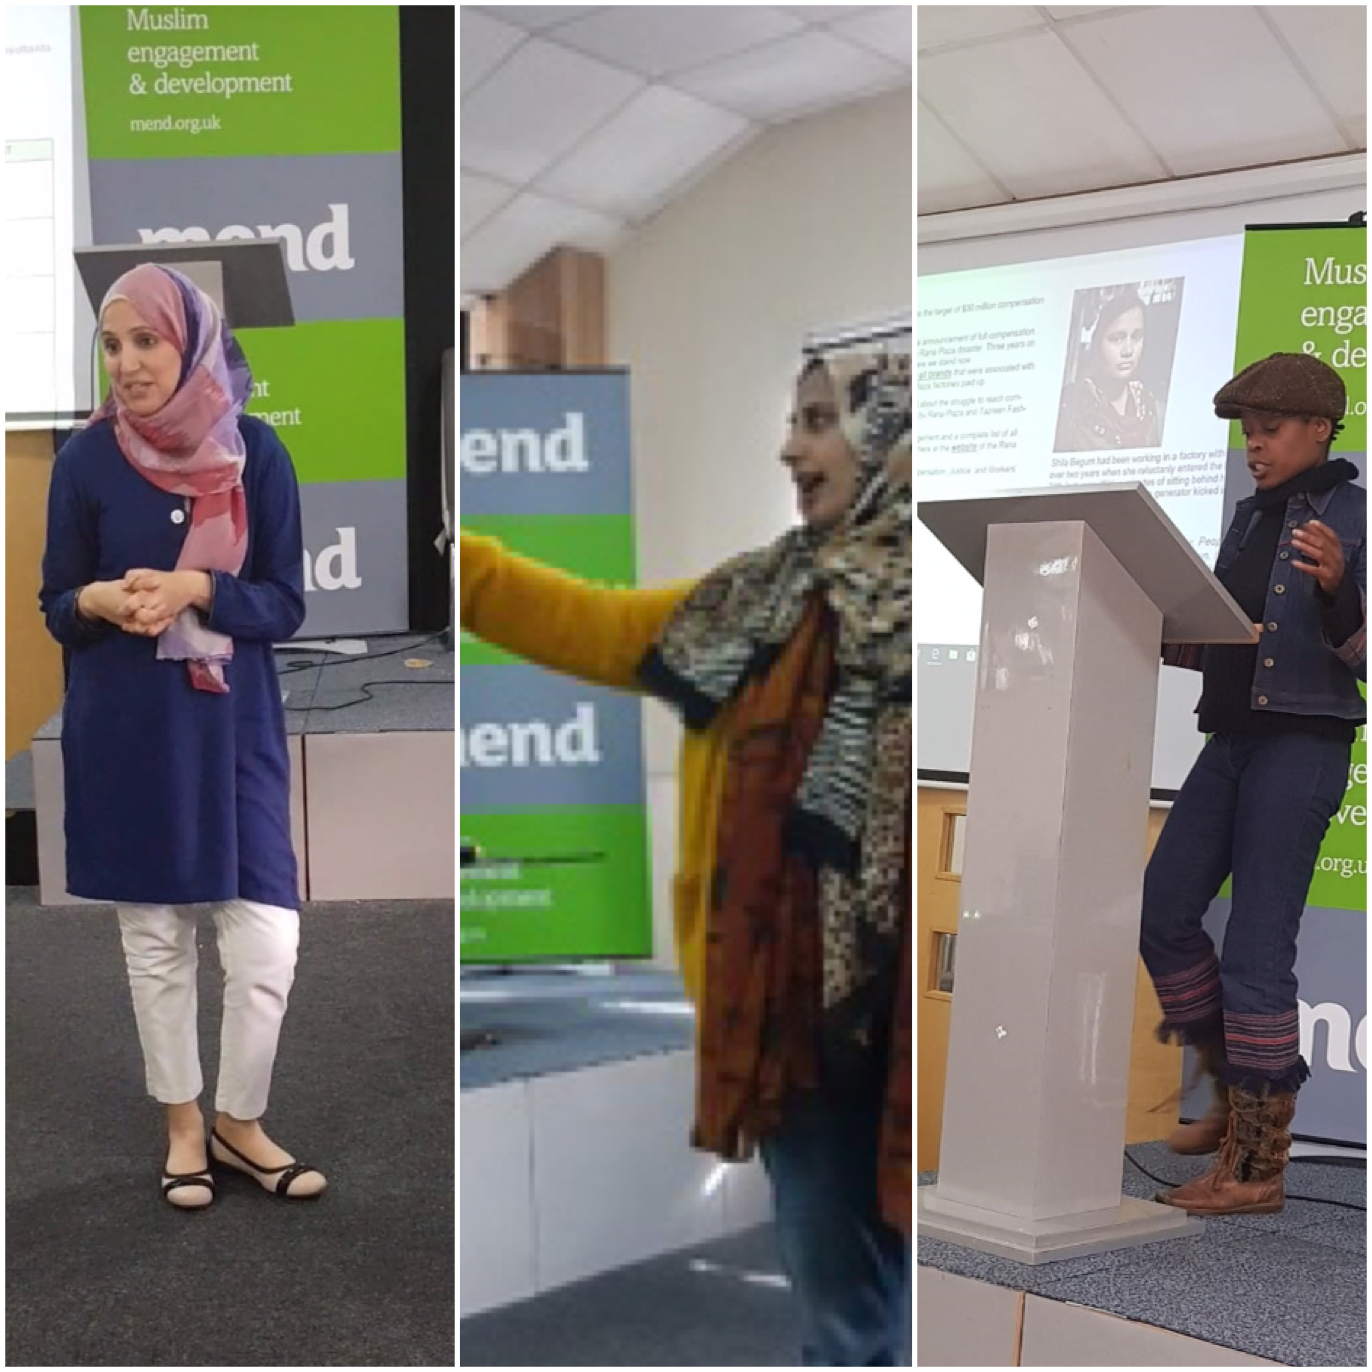 MEND Birmingham: Celebrated International Women's Day with Power!